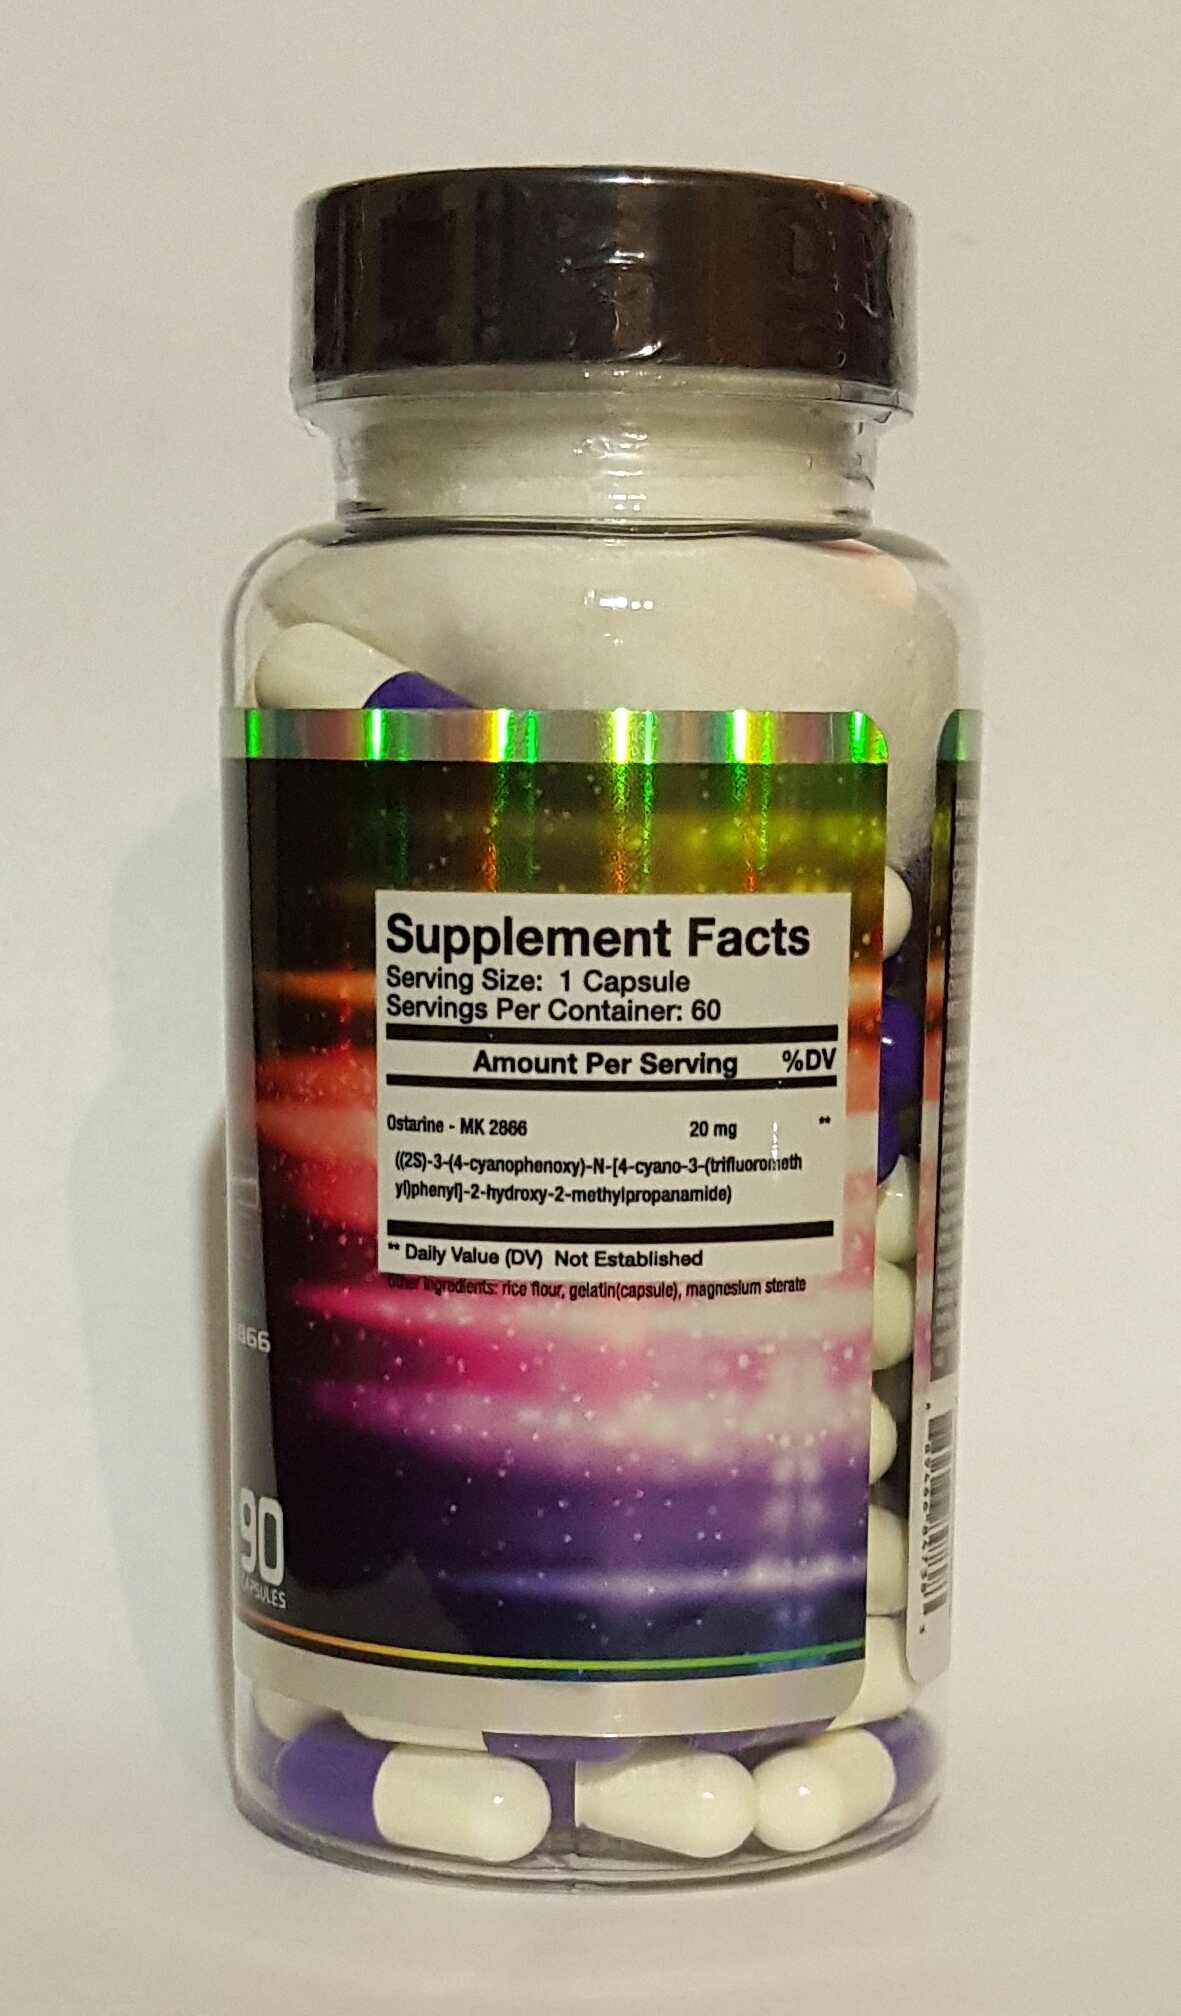 TWISTED LABS - OSTARINE (MK-2866) SARM